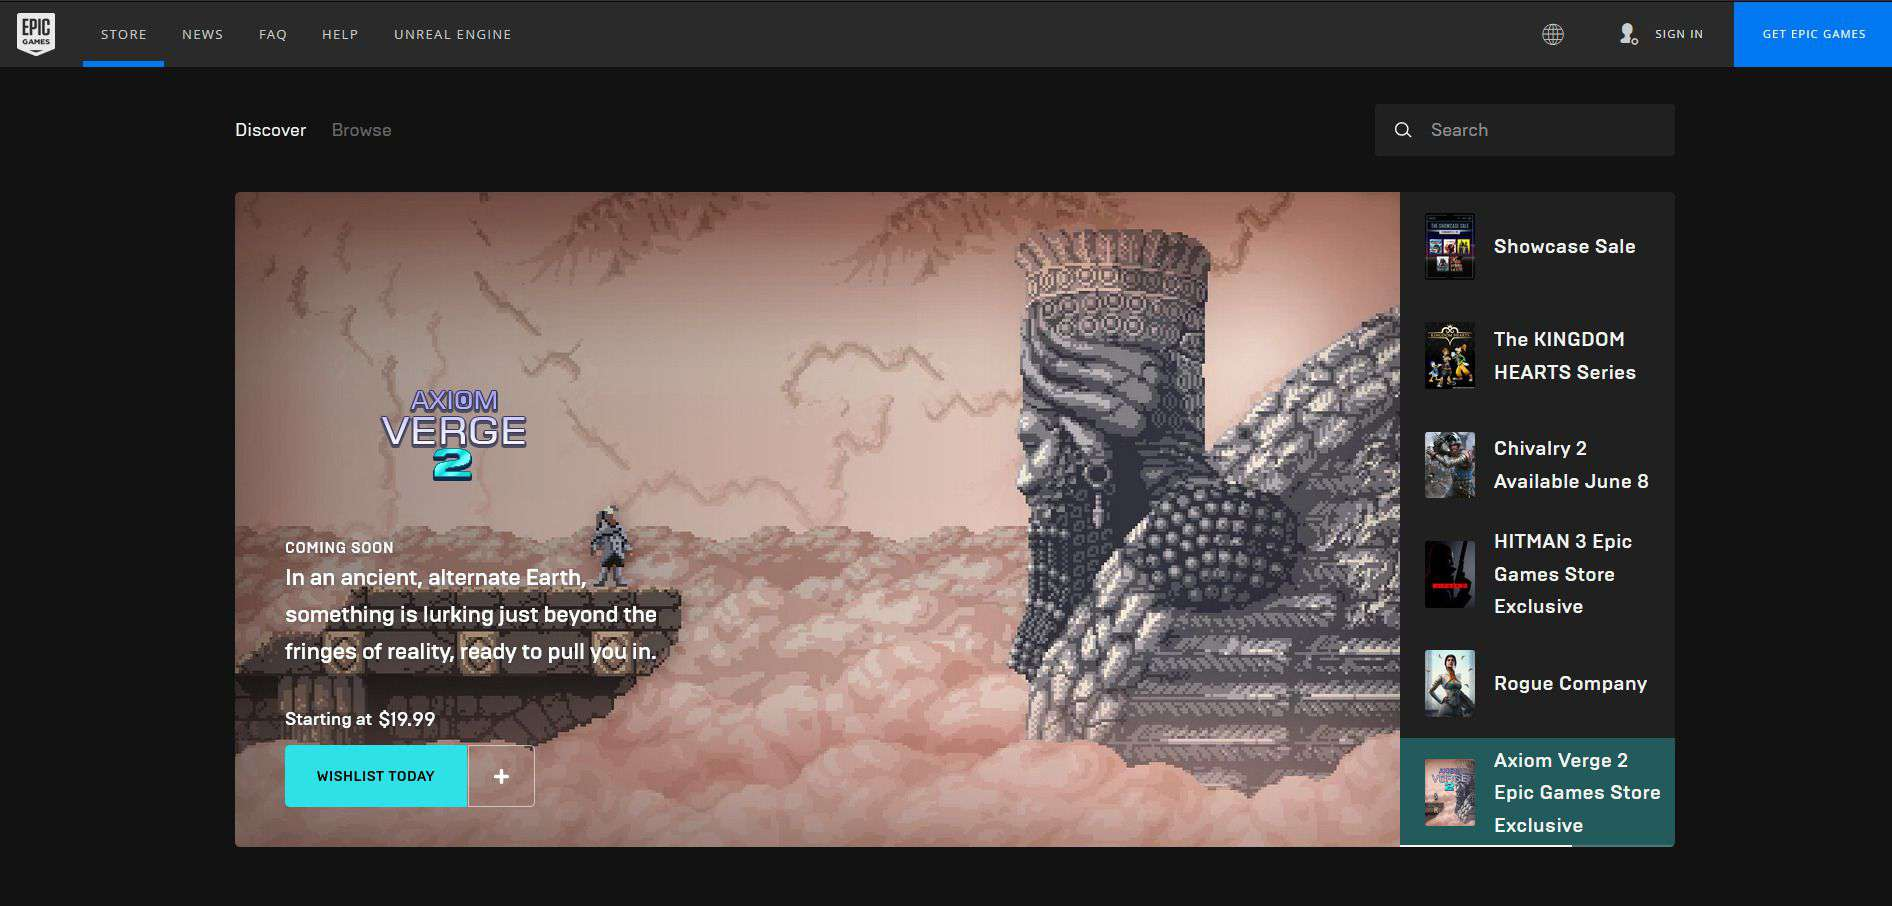 A screenshot of the Epic Games website.